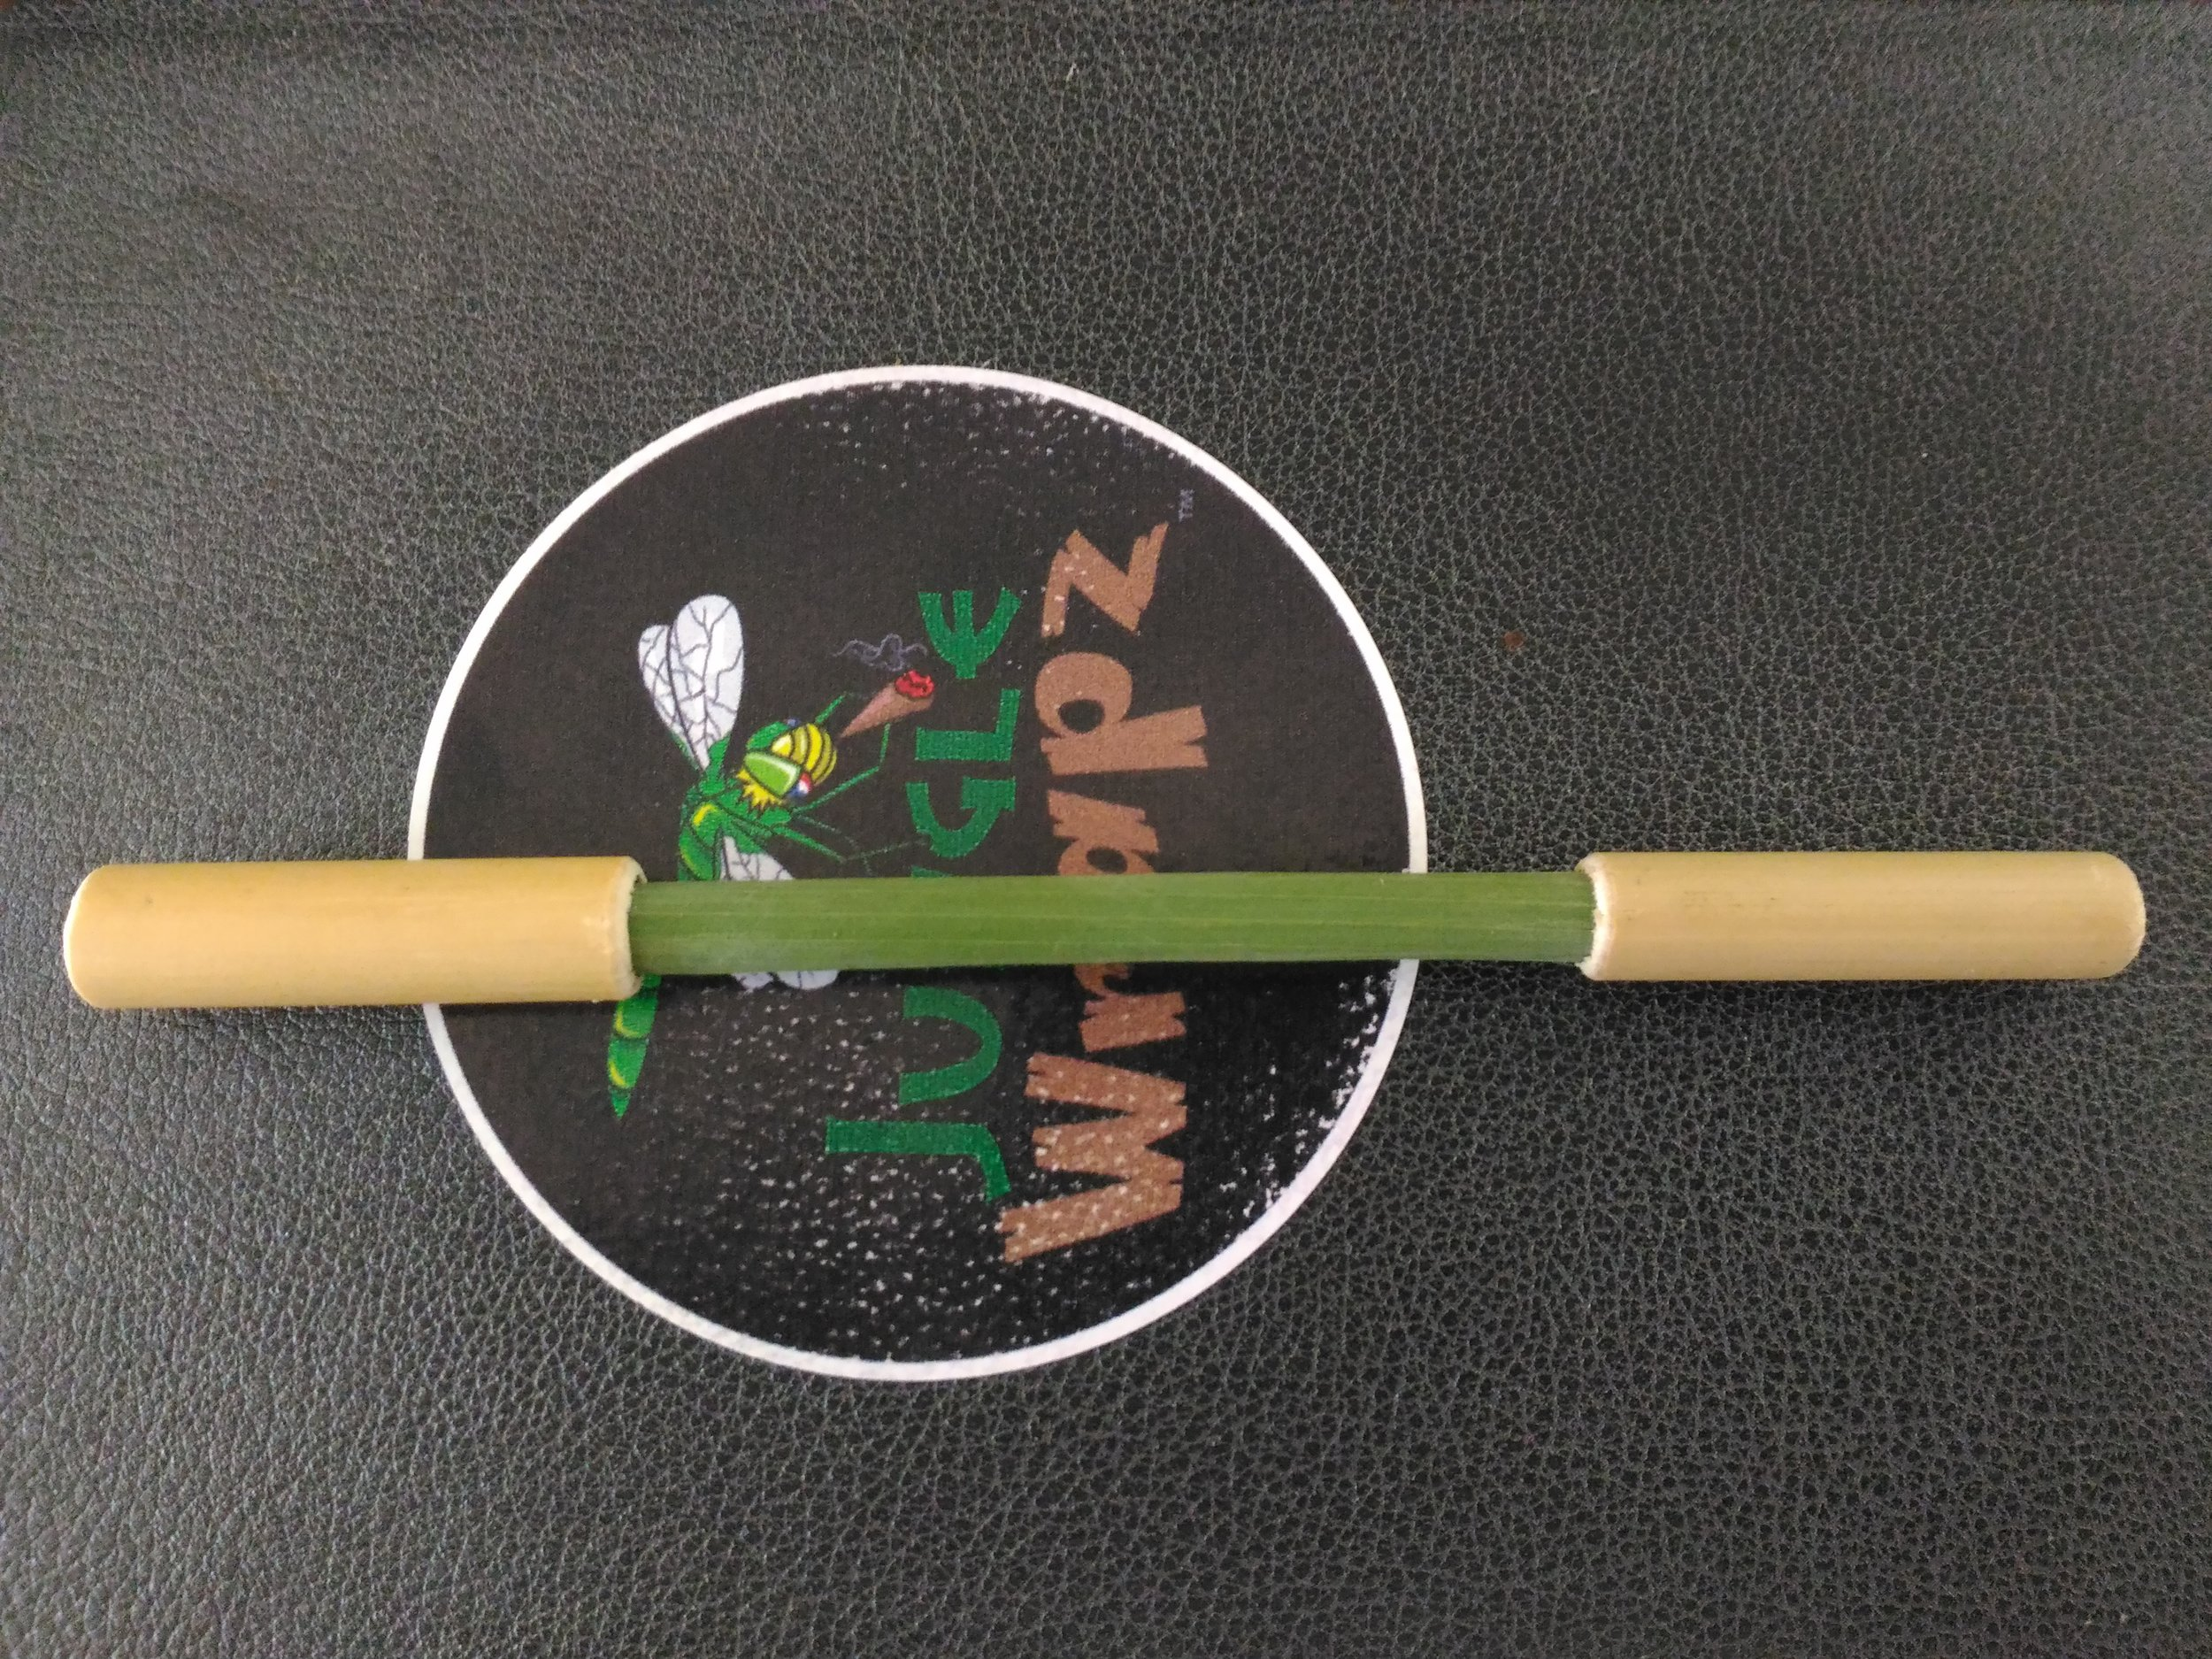 Bamboo Leaf One Hitter - Disposable - Bio-Degradable